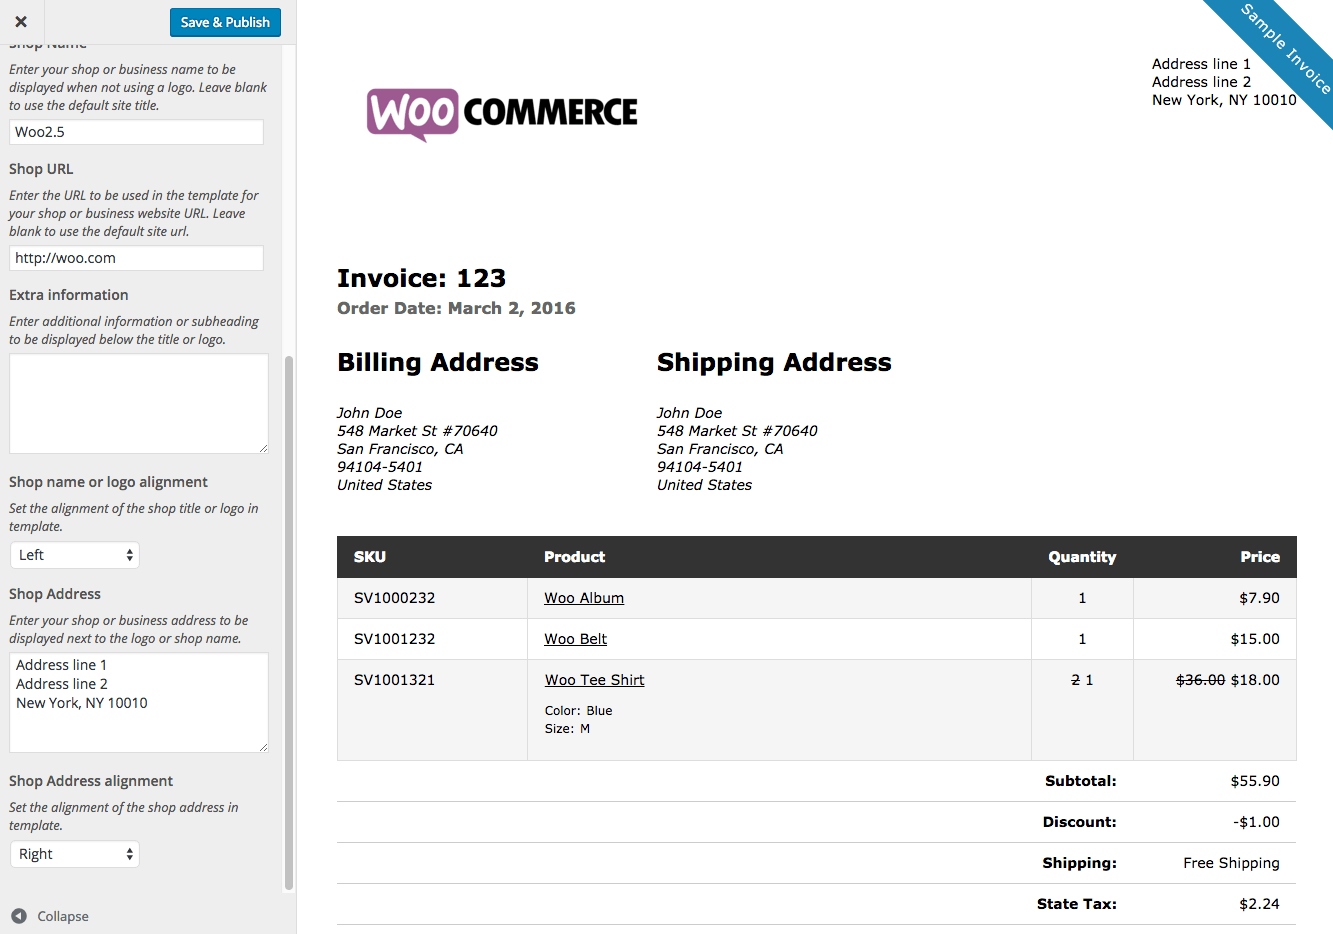 Reliefworkersus  Outstanding Woocommerce Print Invoices Amp Packing Lists  Woocommerce Docs With Inspiring Woocommerce Print Invoices  Packing Lists Customizer With Cute Invoice And Po Also Free Inventory And Invoice Software In Addition Canada Car Invoice Price And Total Invoice As Well As Dhl Proforma Invoice Template Additionally Invoice Template For Services Provided From Docswoocommercecom With Reliefworkersus  Inspiring Woocommerce Print Invoices Amp Packing Lists  Woocommerce Docs With Cute Woocommerce Print Invoices  Packing Lists Customizer And Outstanding Invoice And Po Also Free Inventory And Invoice Software In Addition Canada Car Invoice Price From Docswoocommercecom